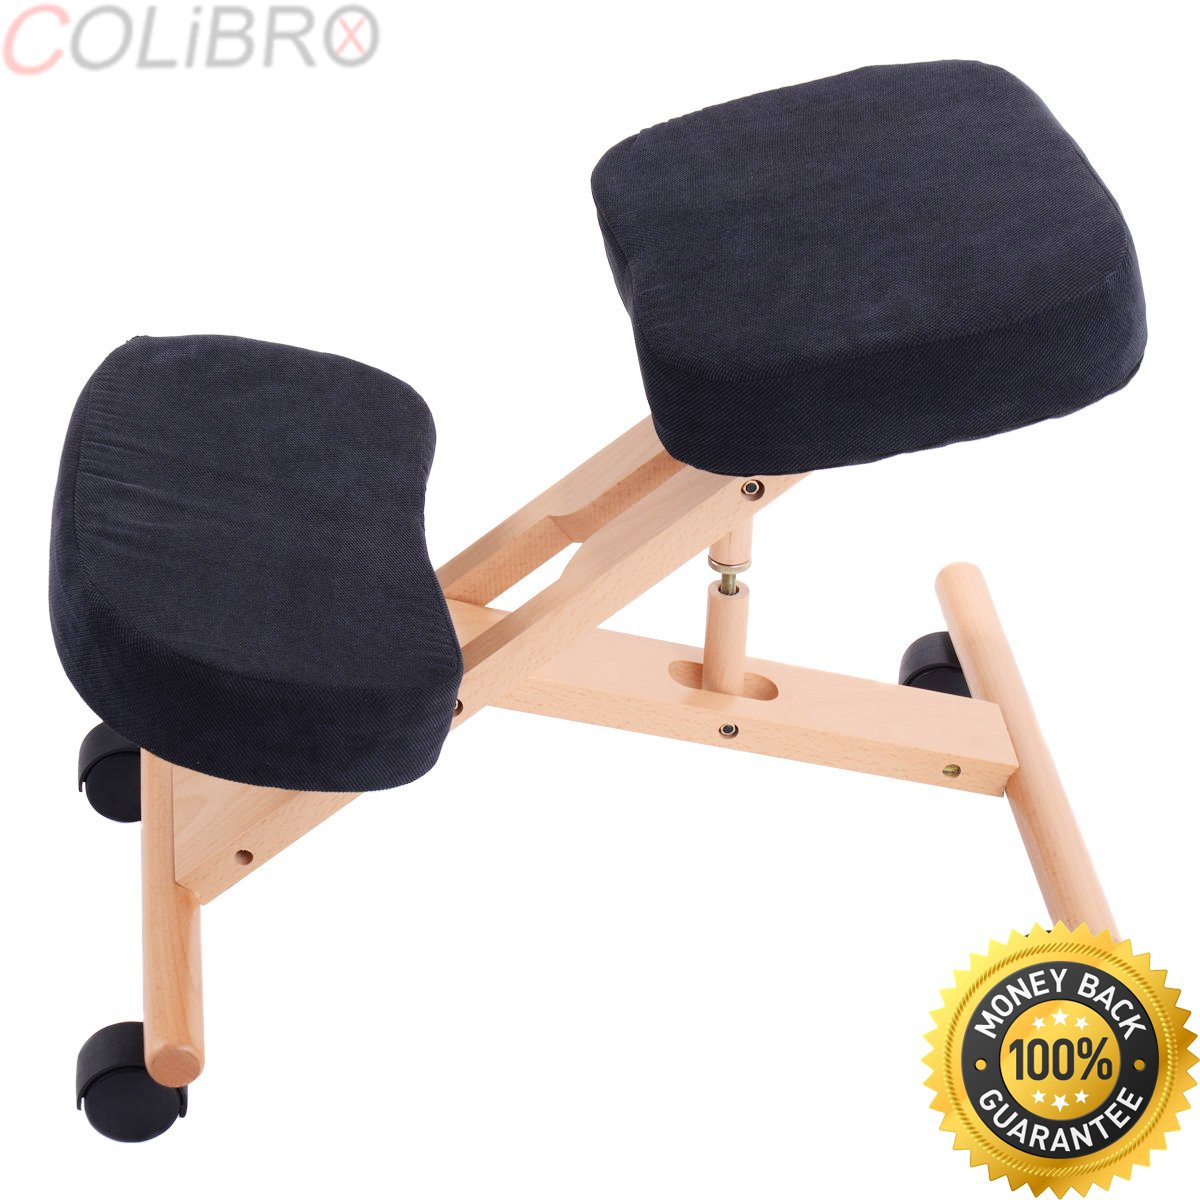 sports shoes b7a6d 3f517 COLIBROX--Ergonomic Kneeling Chair Wooden Adjustable Mobile Padded Seat and  Knee Rest New. best ergonomic kneeling chair. best kneeling chair amazon.  ...